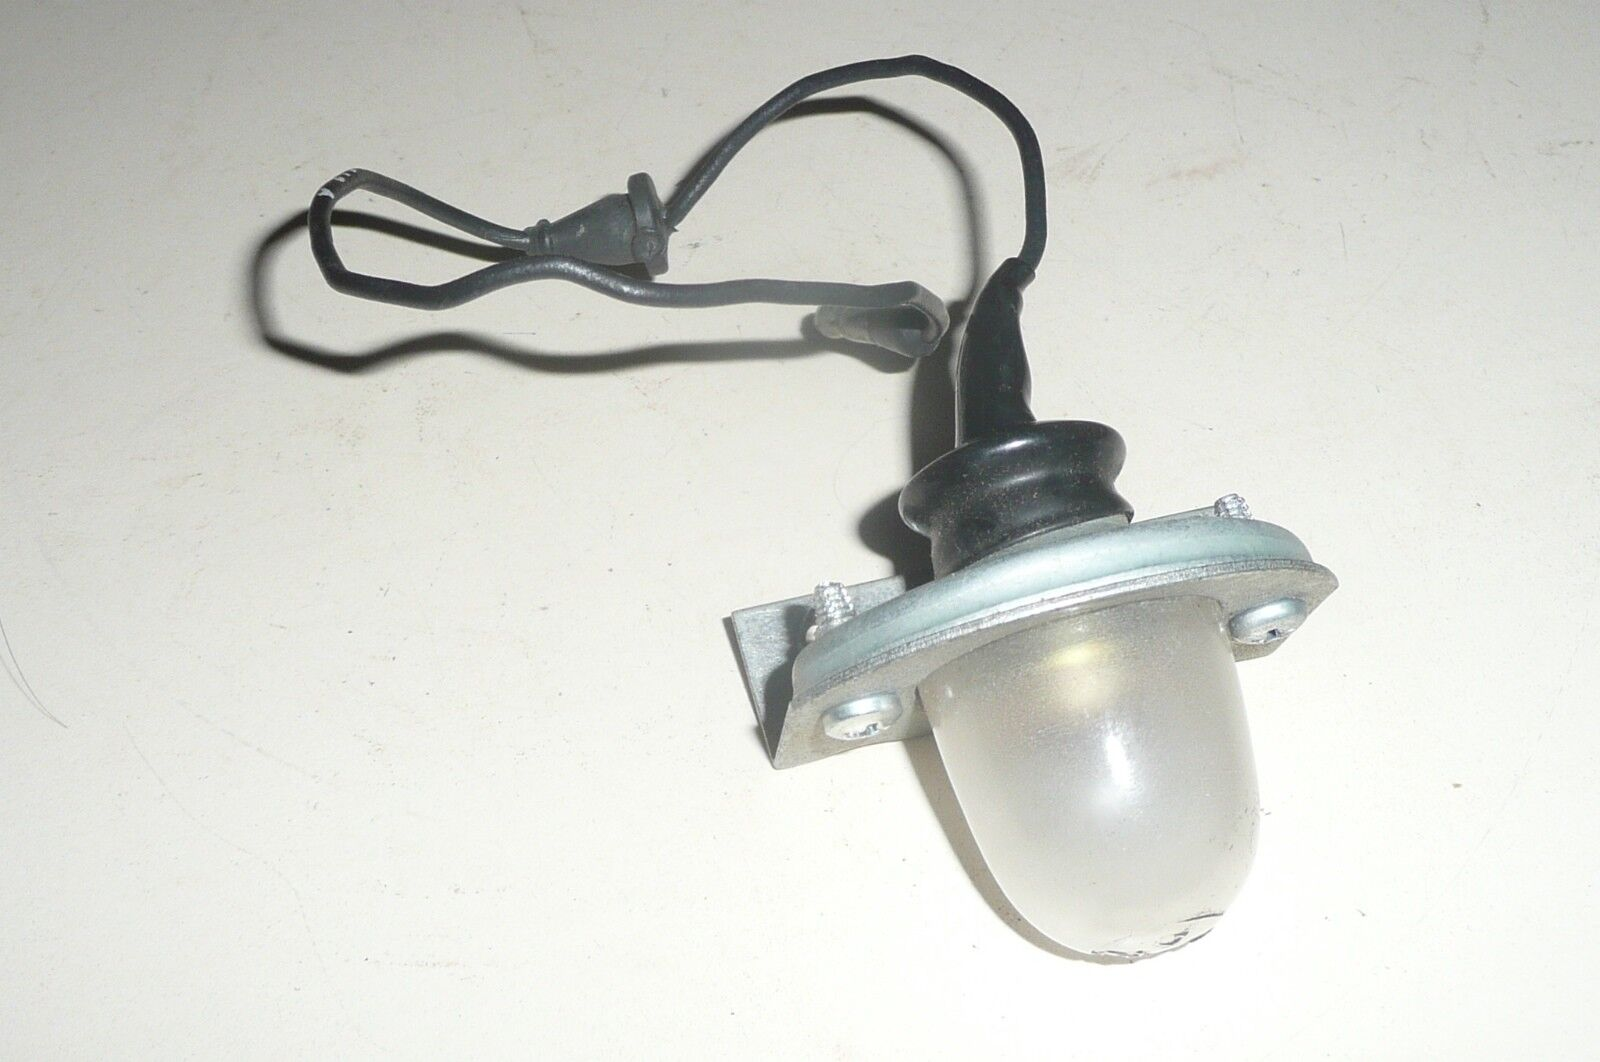 1958 Ford Mercury station wagon license plate lamp assembly NOS ranchero 58 lite